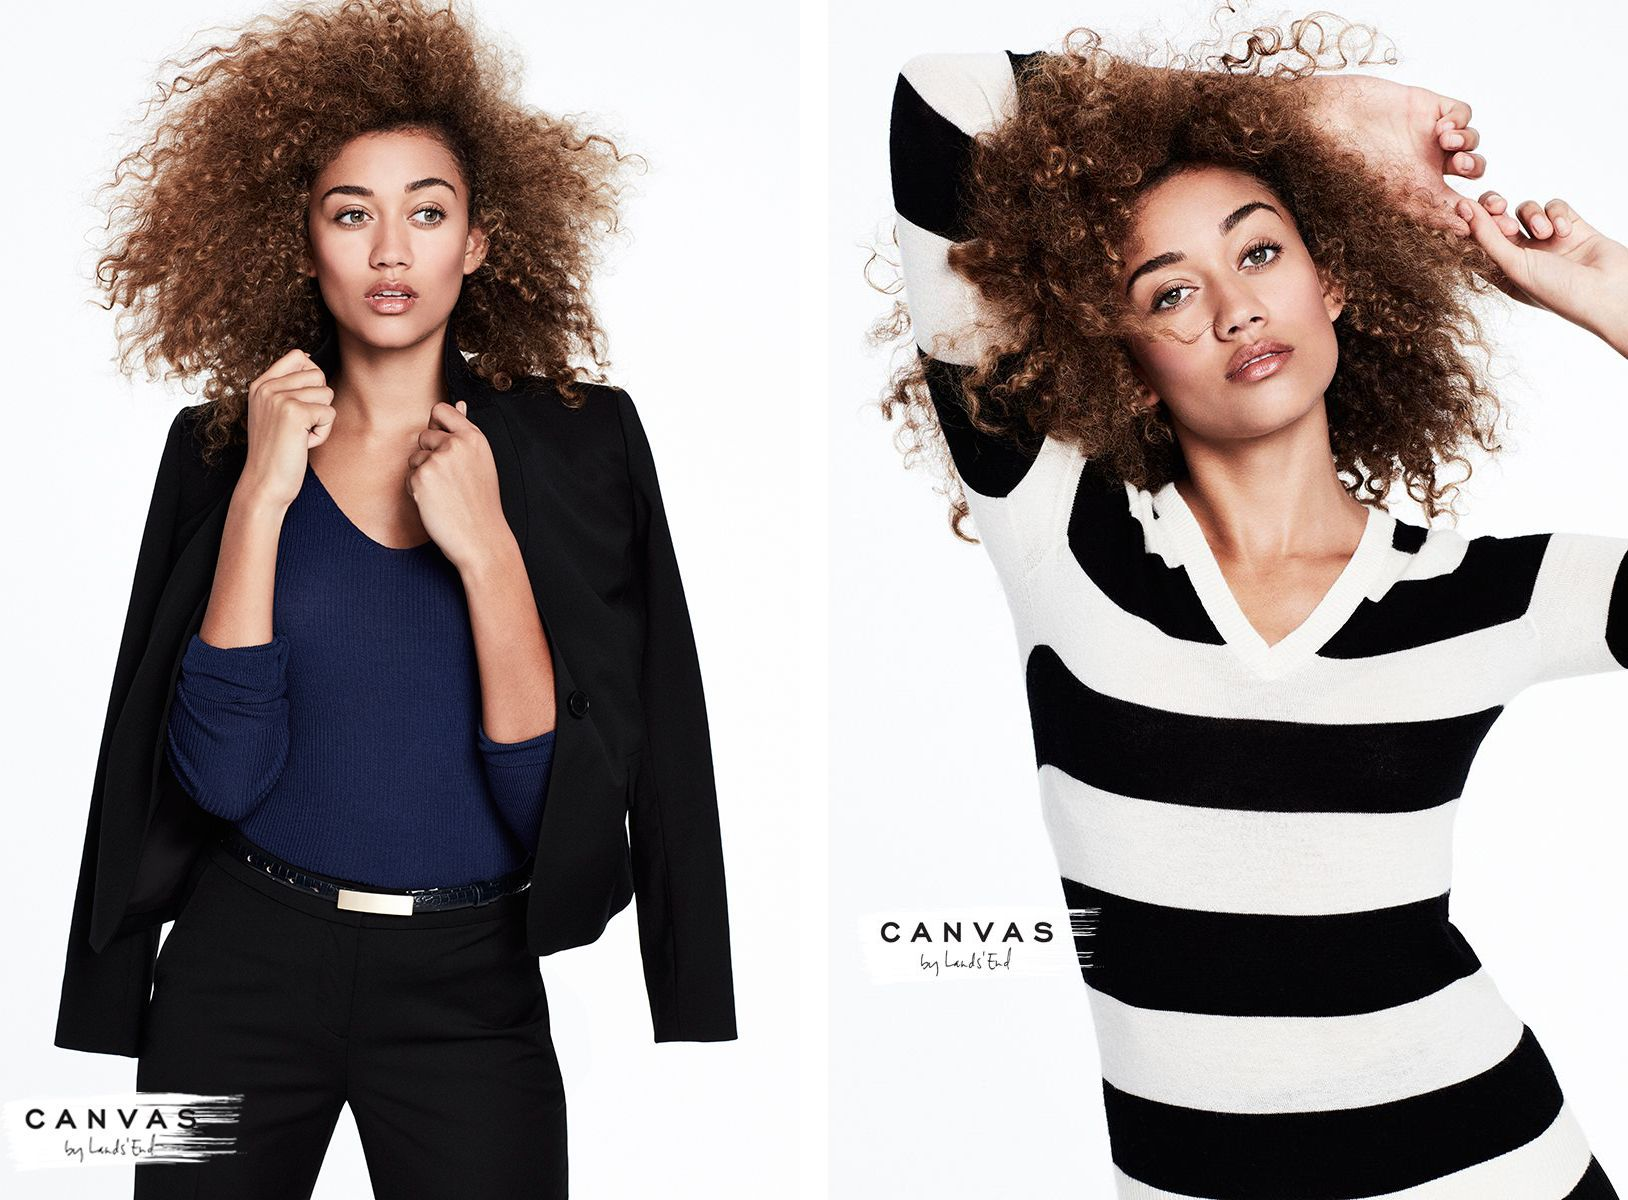 Landsend Canvas Lookbook